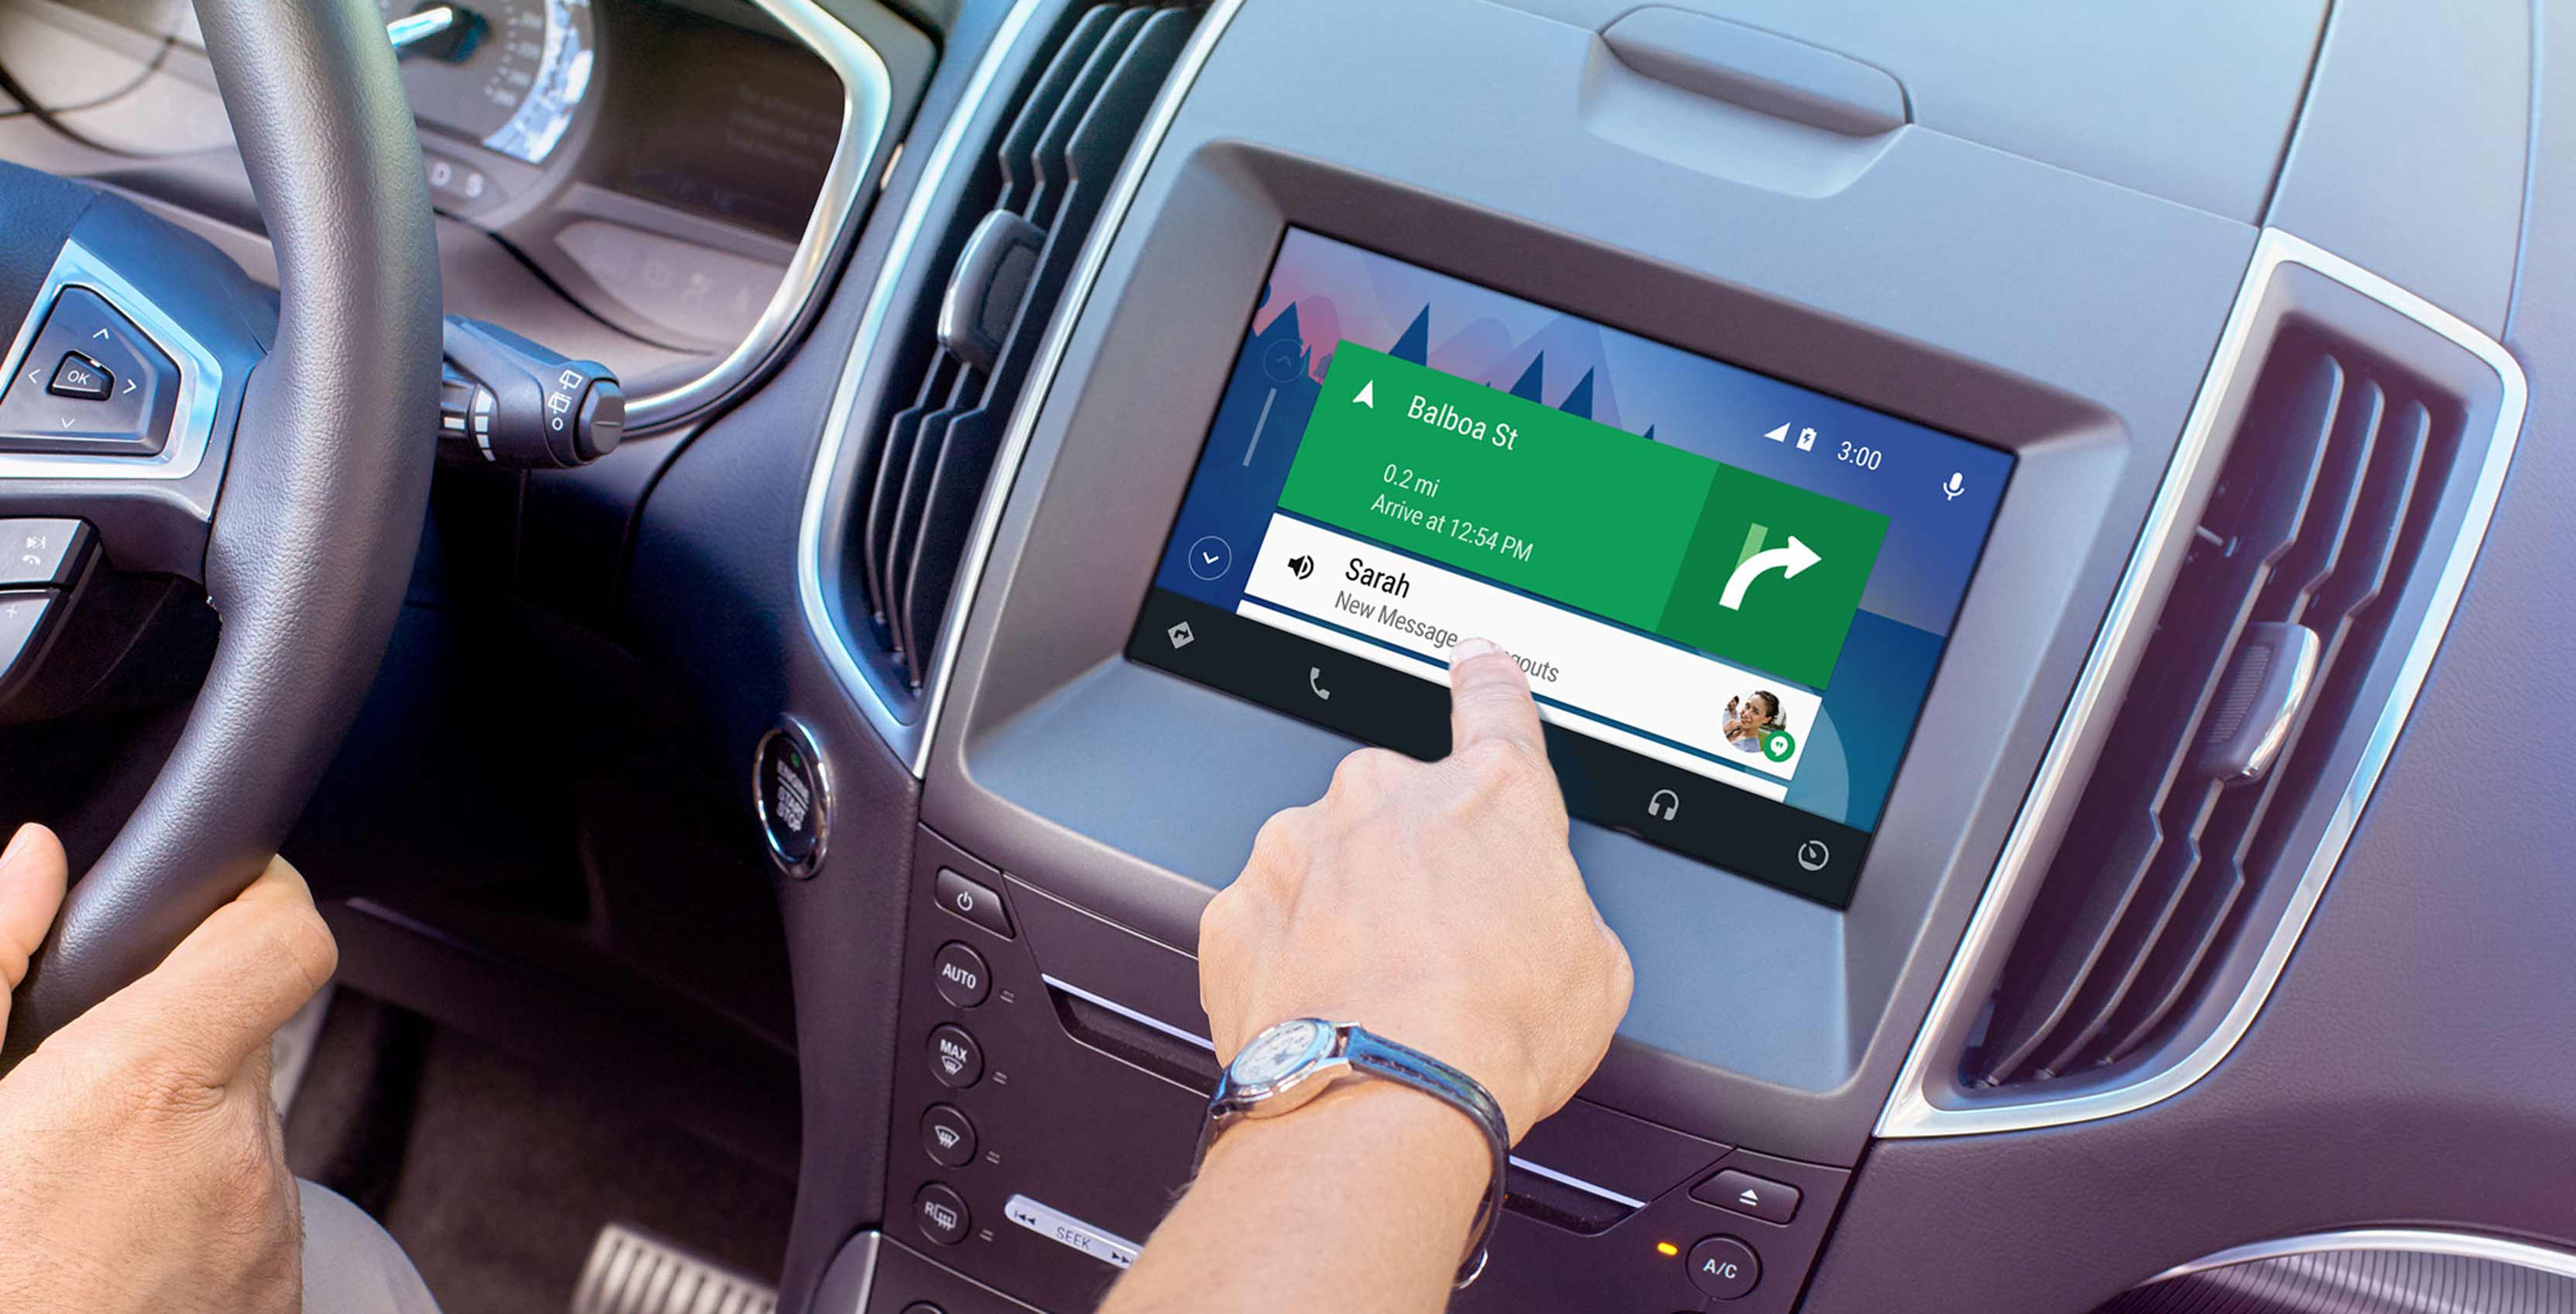 Ford Sync 3 infotainment system running Android Auto